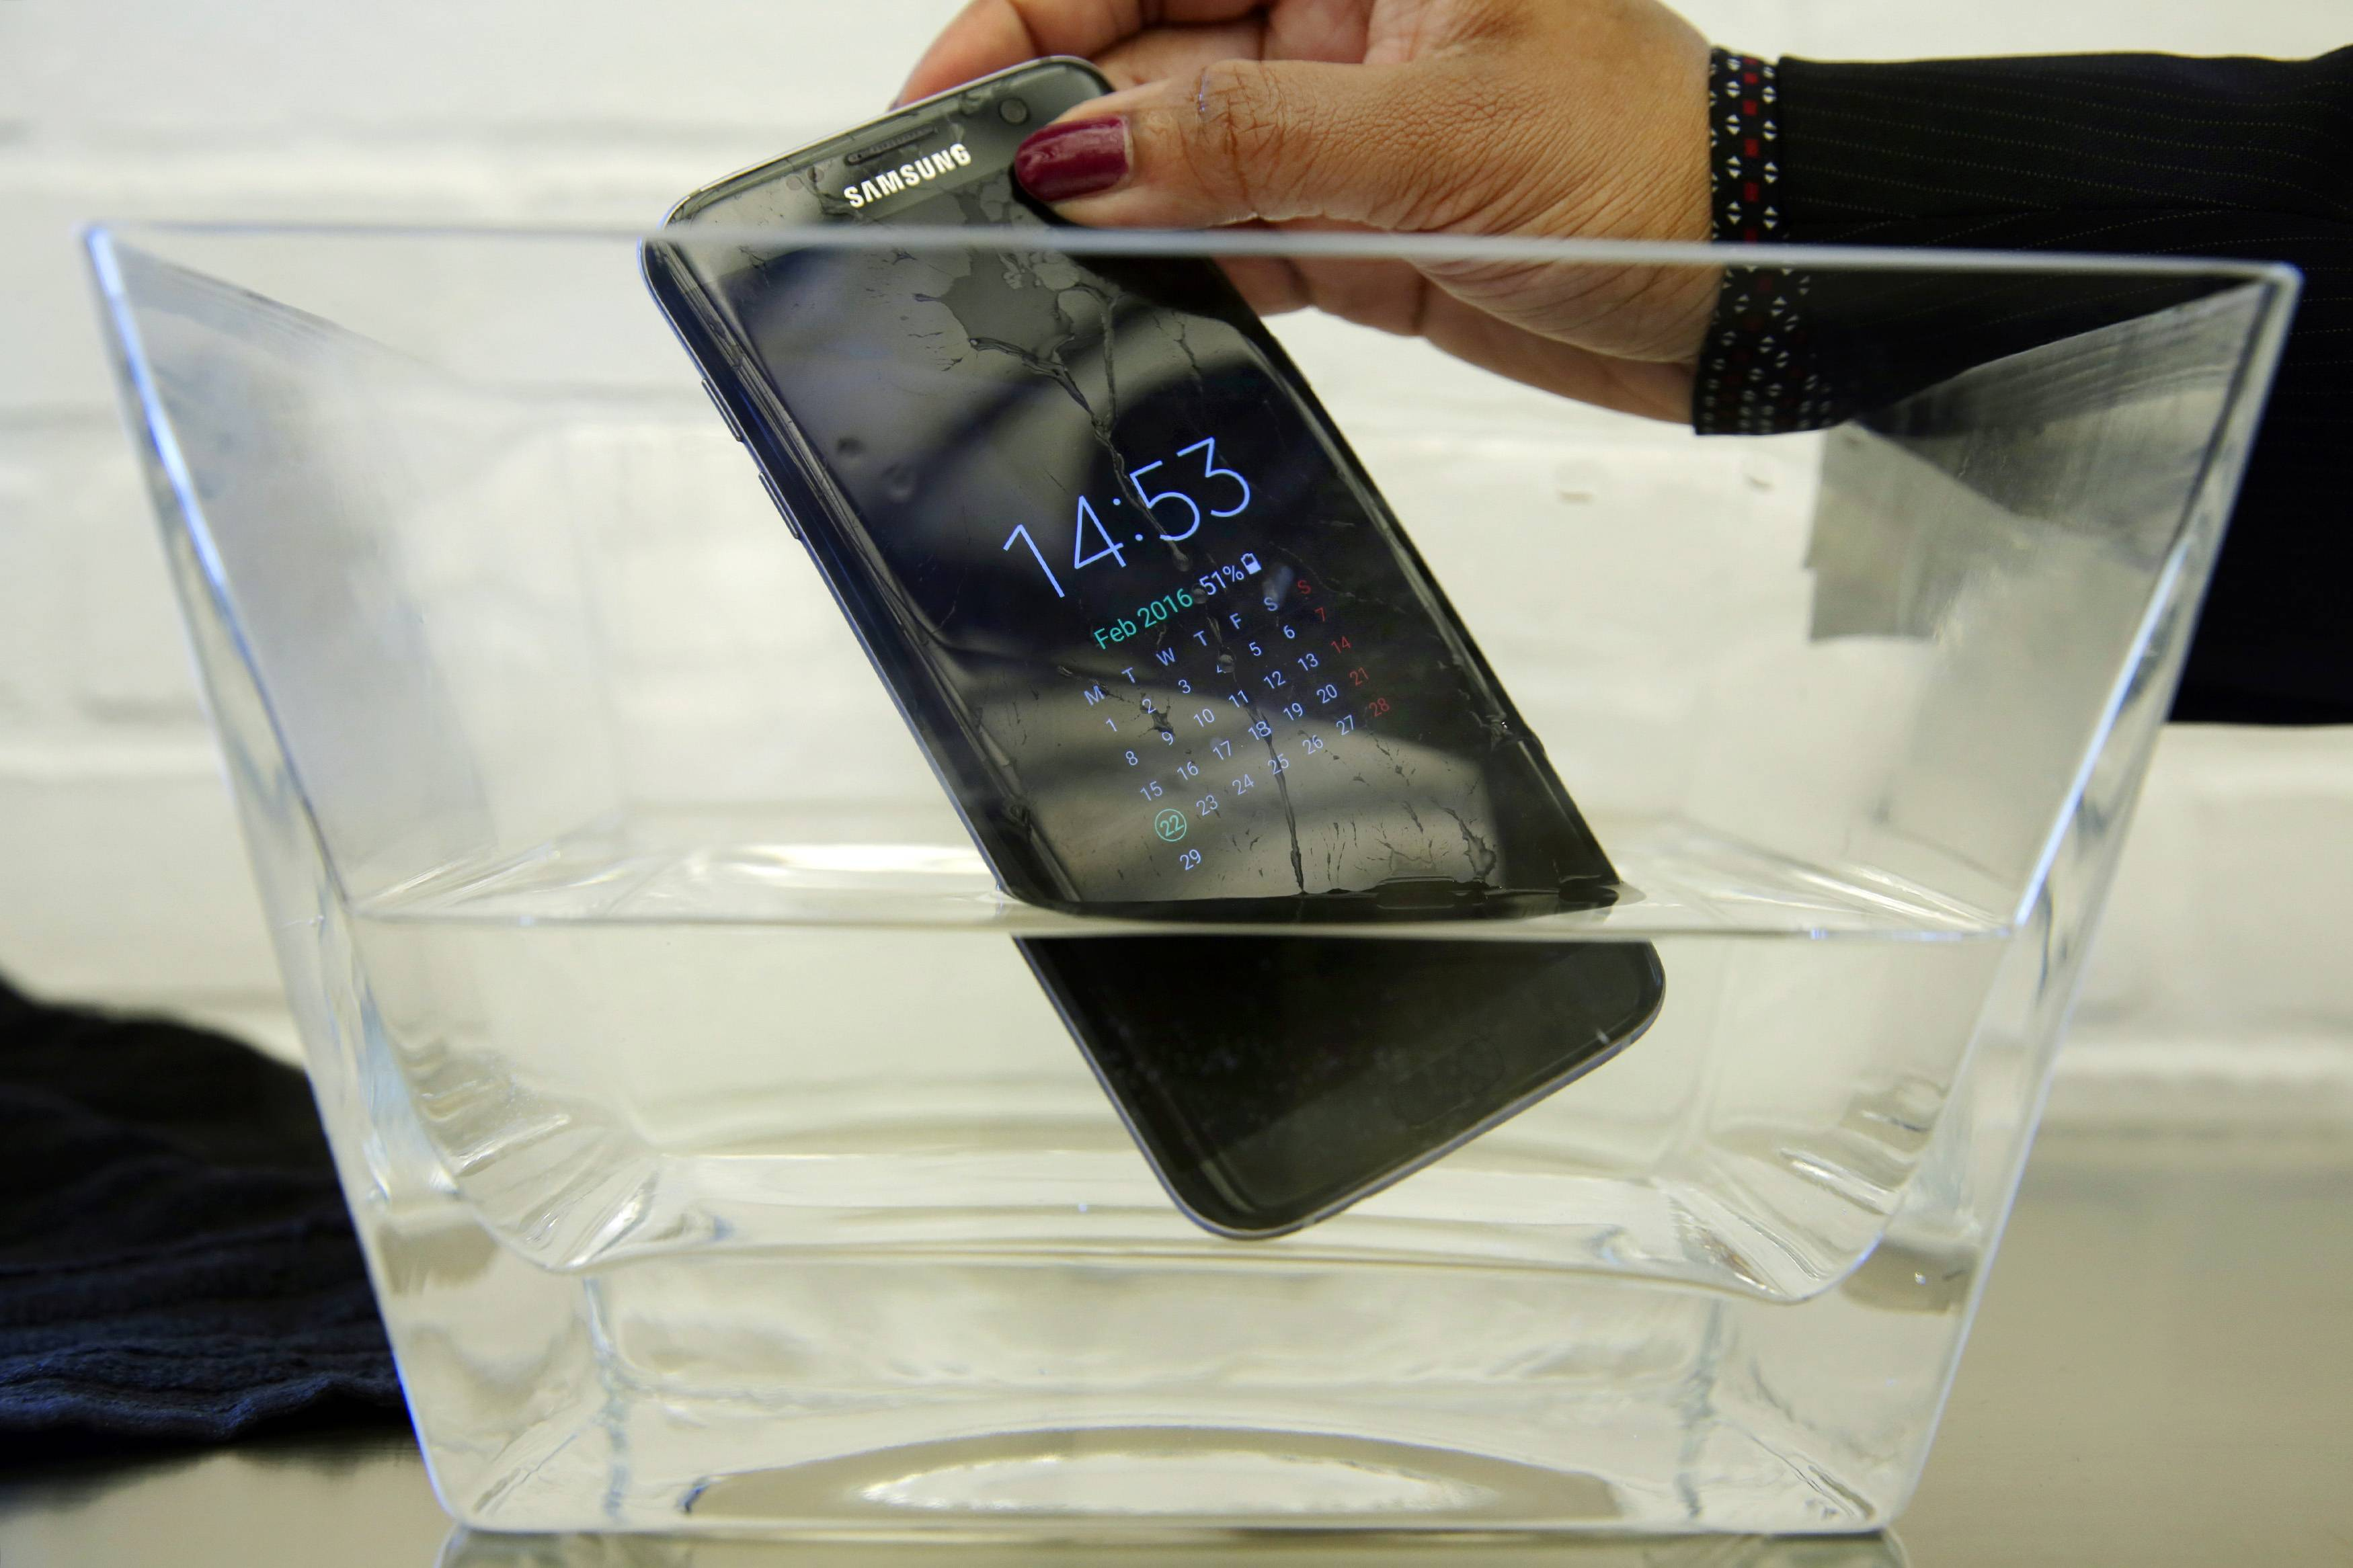 The Samsung S7 Edge is widely considered the best Android smartphone on the market — possibly the best ever made. The combination of a sleek design and strong battery life, along with favorite features that had been removed from previous models and competitors' phones — such as the option to expand storage with an SD card and waterproofing — appealed to customers.